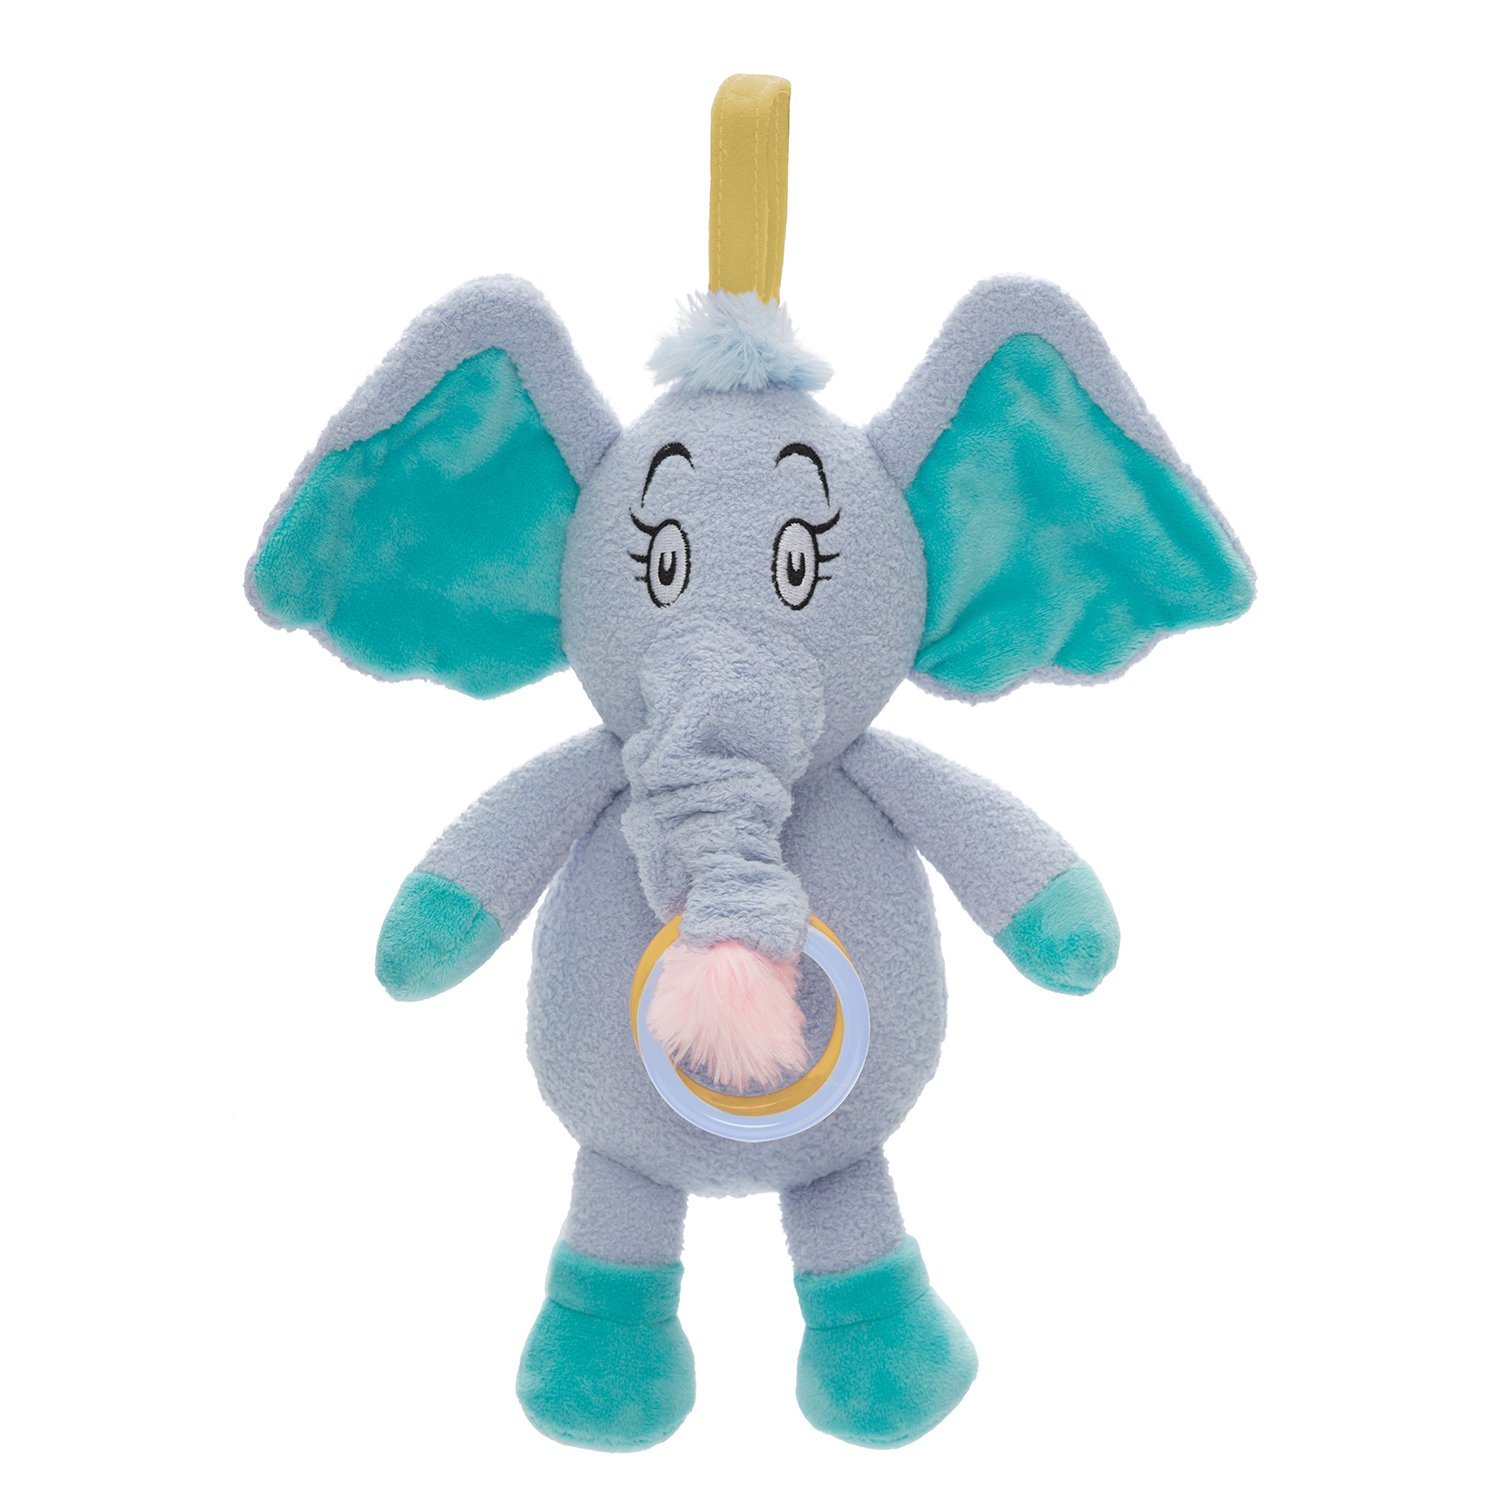 Seuss Horton Pull Musical Travel Toy /& Teether 153520 Manhattan Toy Dr